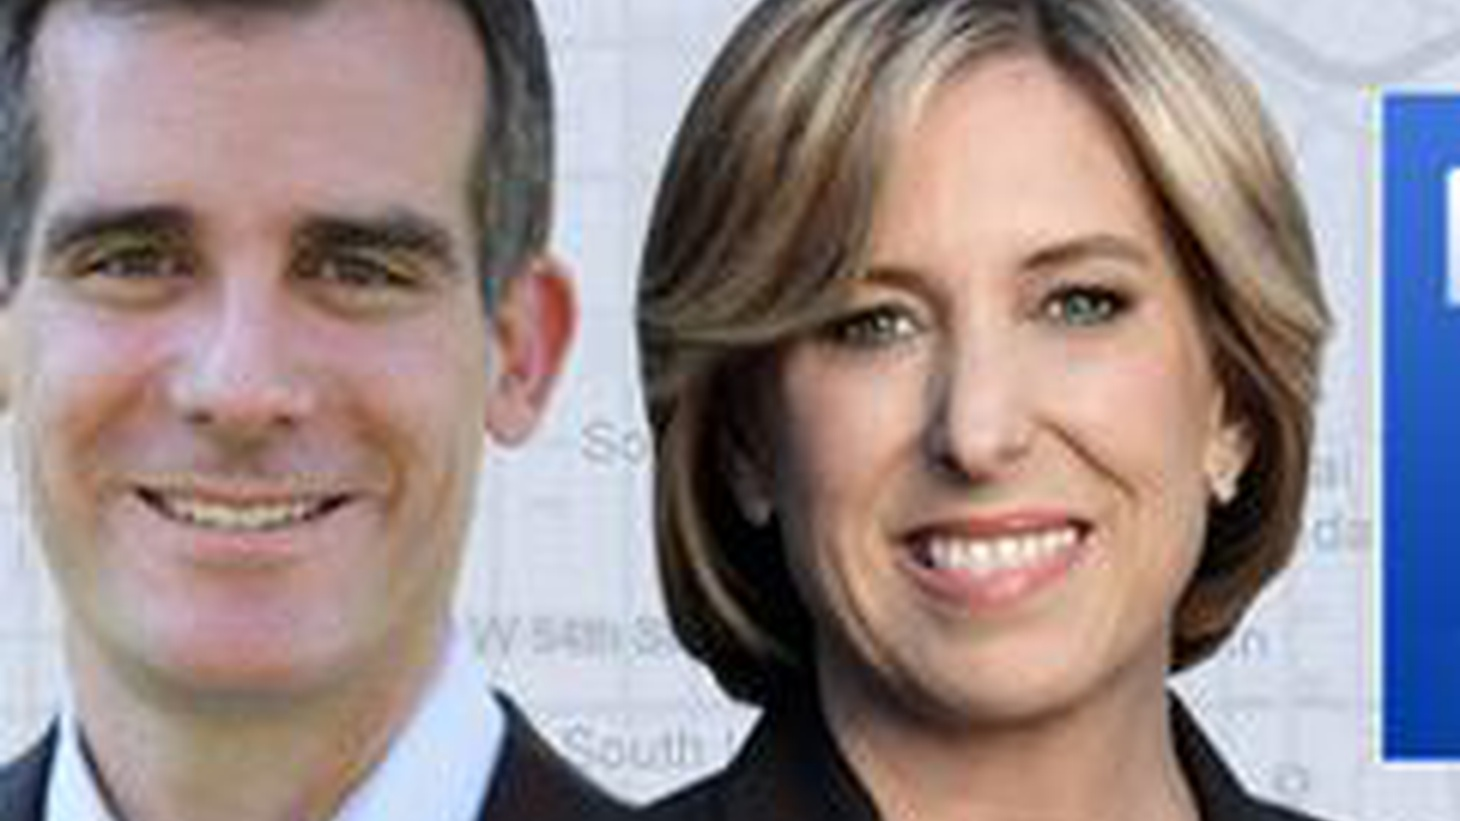 On Tuesday, May 7, Warren Olney moderates a live debate between Eric Garcetti and Wendy Greuel, candidates for mayor of Los Angeles. (2-3pm, repeats 7-8pm)